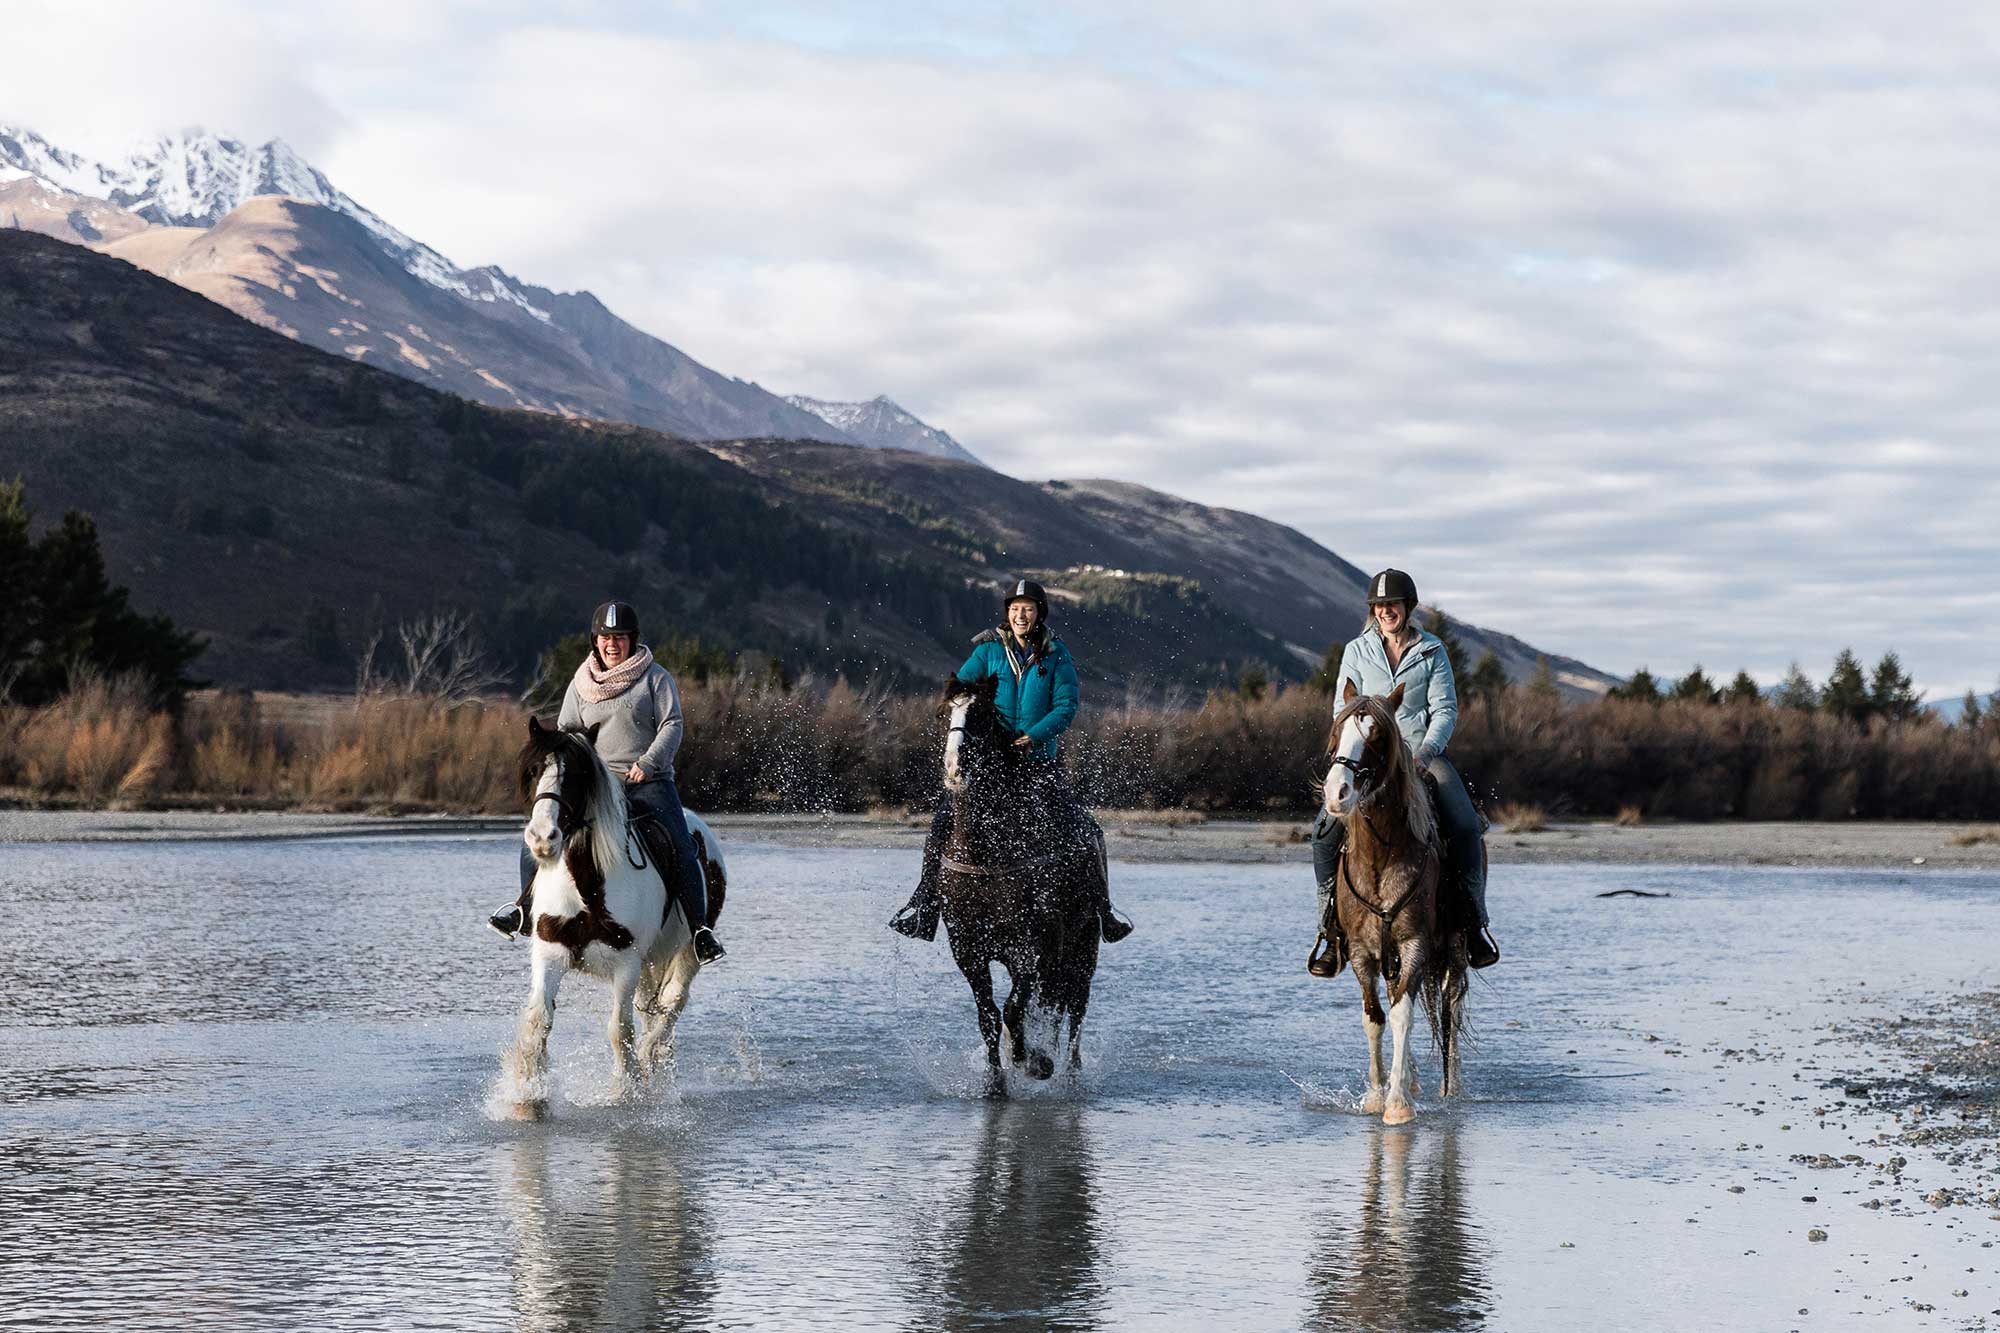 Closed Borders 3 Day Trek - High Country Horses - Susan Miller Photography